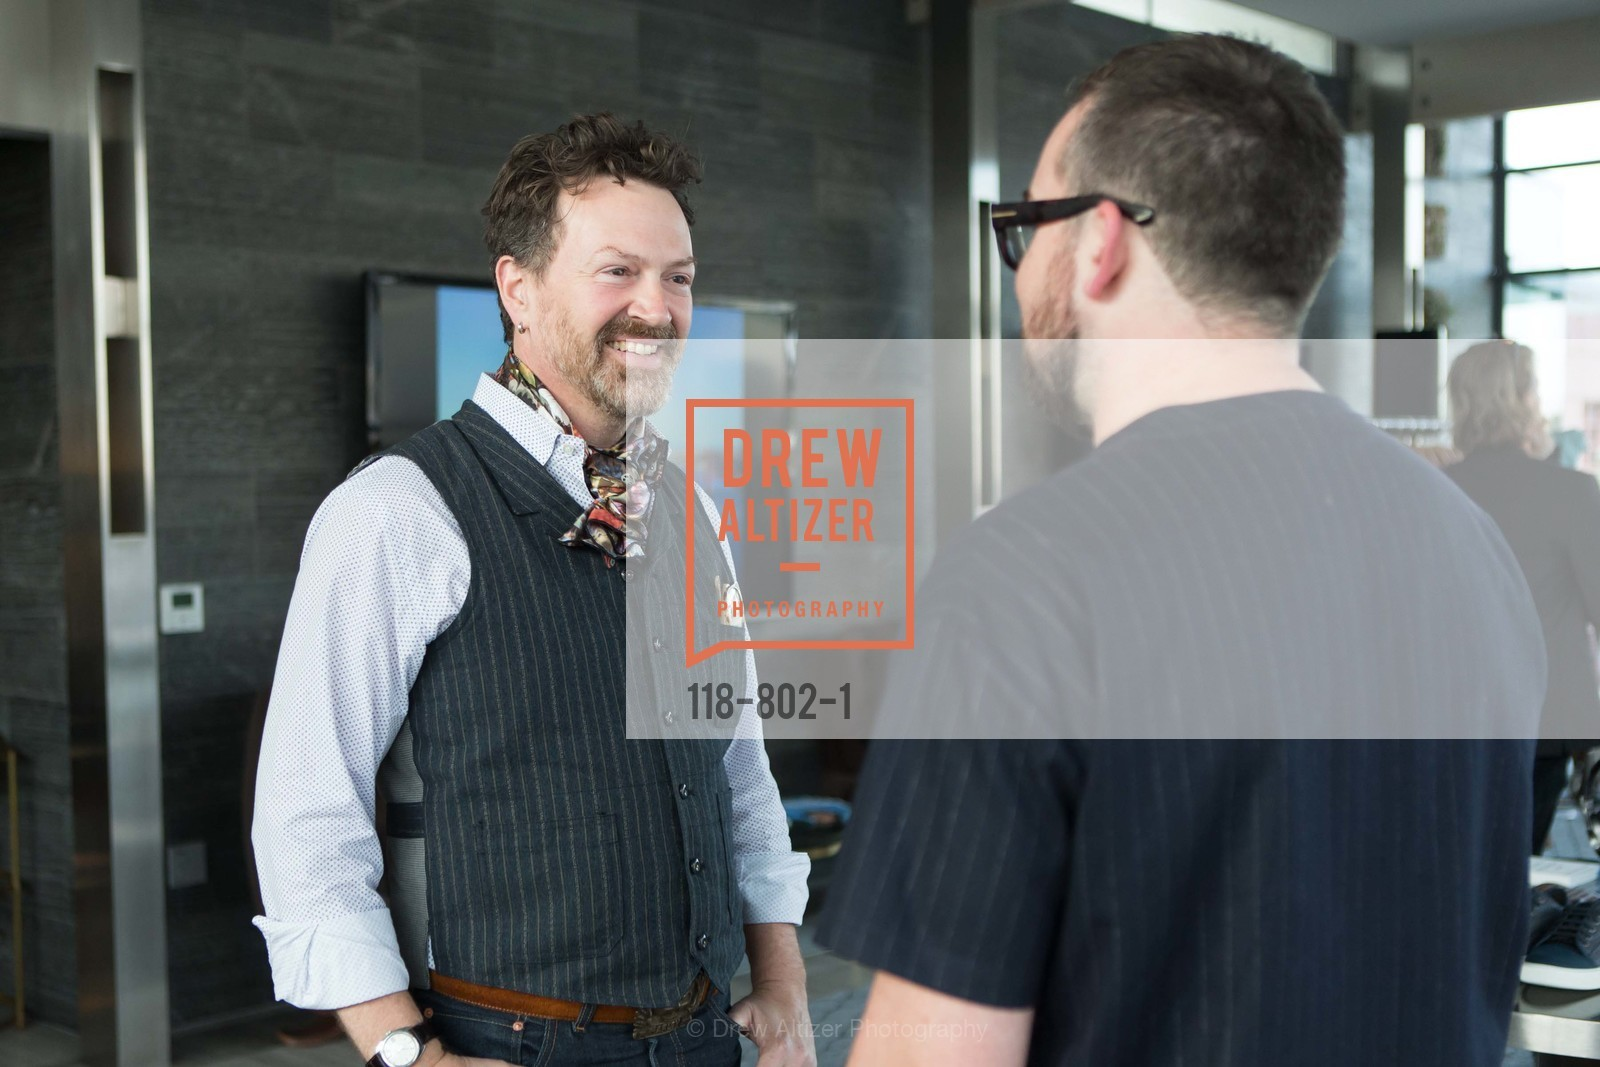 Paul D'Orleans, MR PORTER Celebrate The San Francisco Issue of The Journal, US, April 24th, 2015,Drew Altizer, Drew Altizer Photography, full-service agency, private events, San Francisco photographer, photographer california